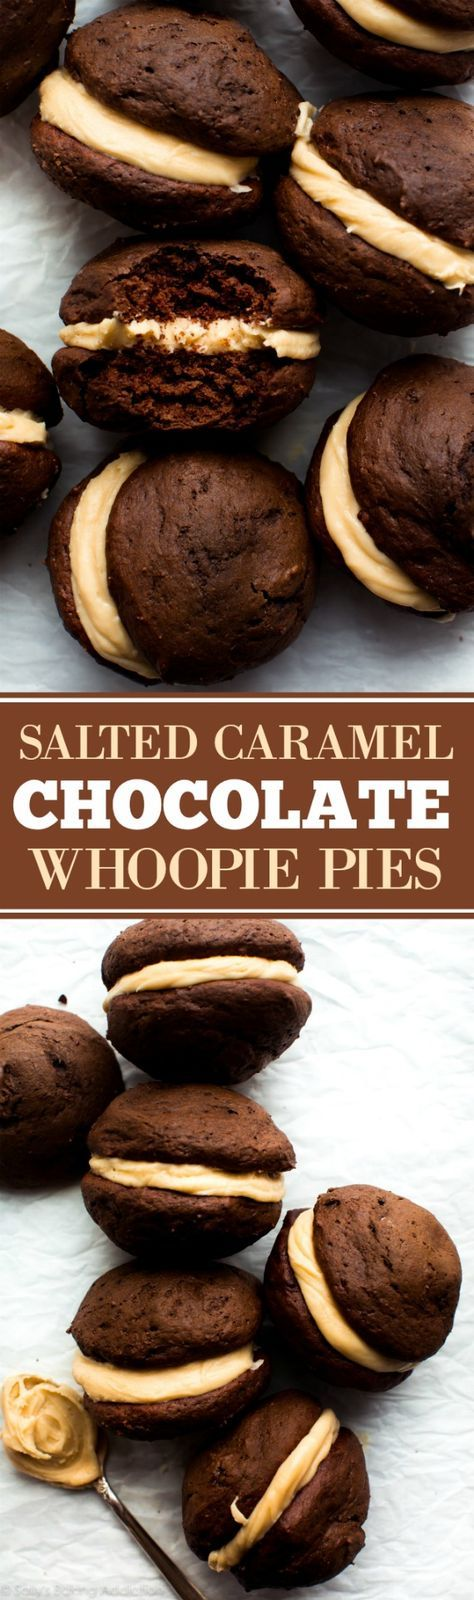 Soft, moist, and super EASY chocolate whoopie pies filled with salted caramel frosting! YUM.